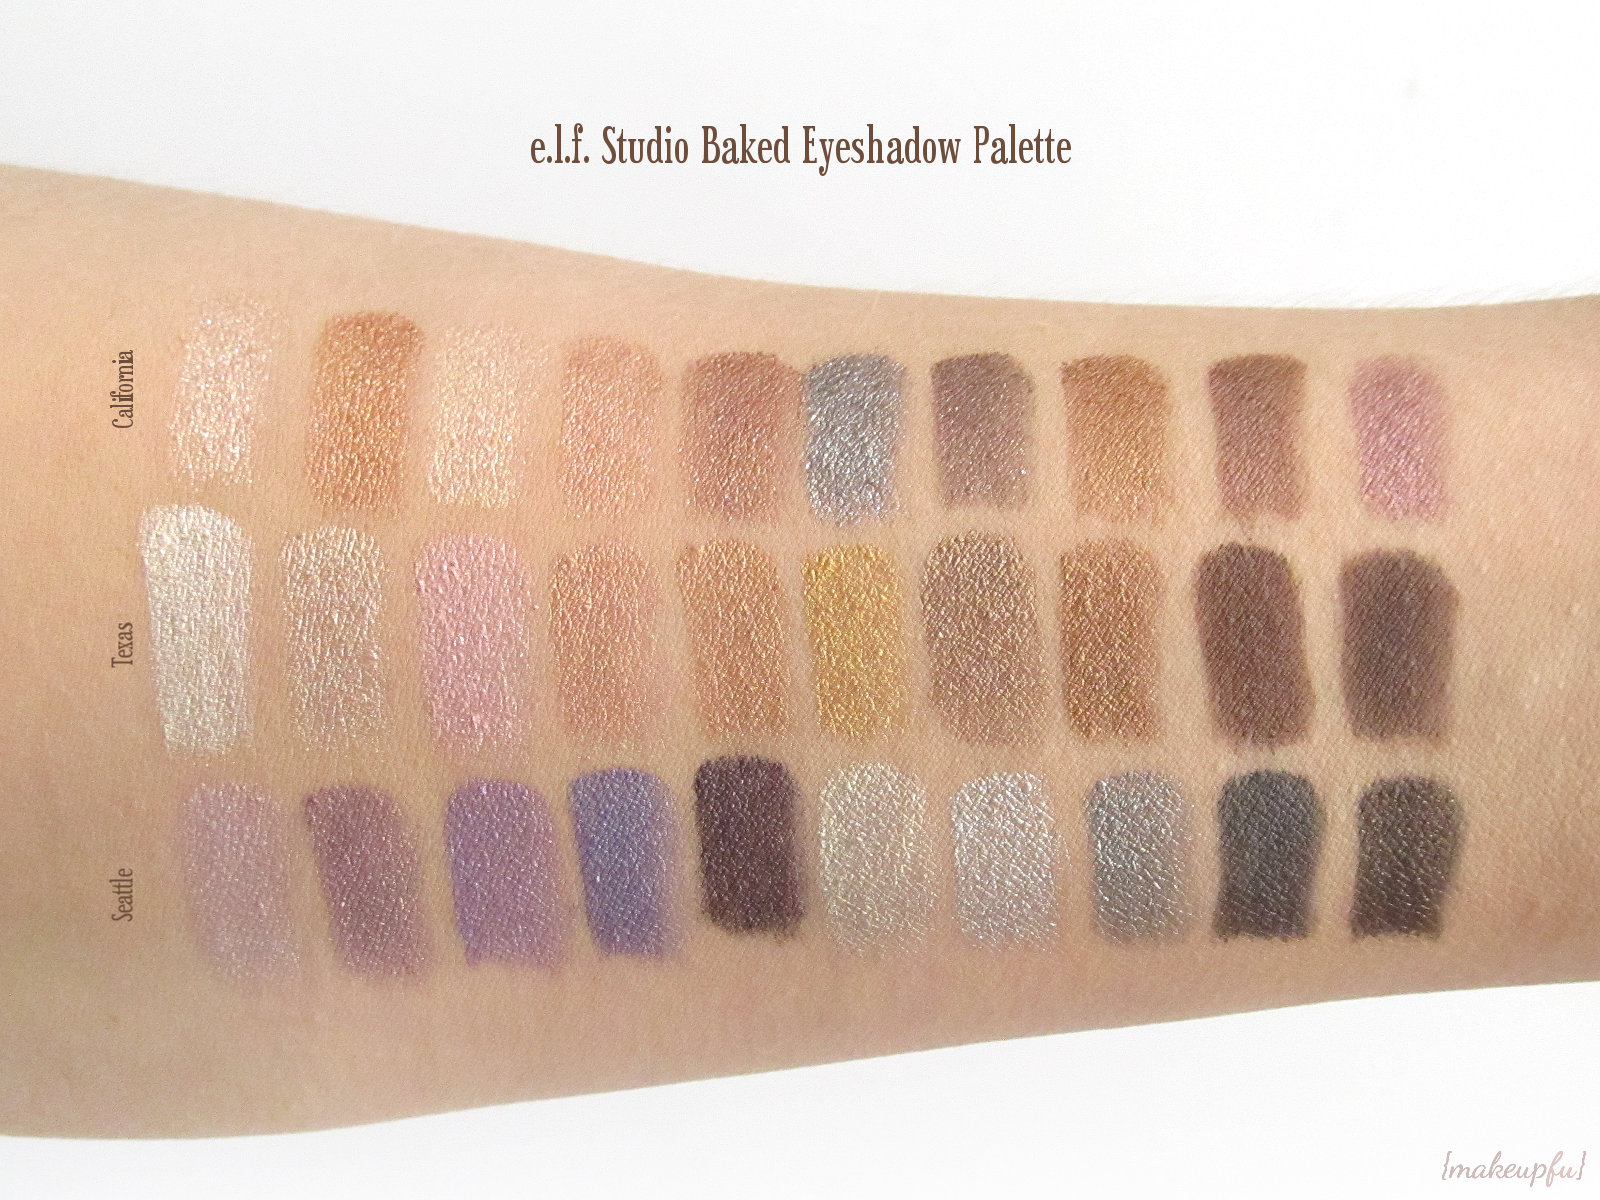 Prism Eyeshadow Palette - Naked by e.l.f. #11